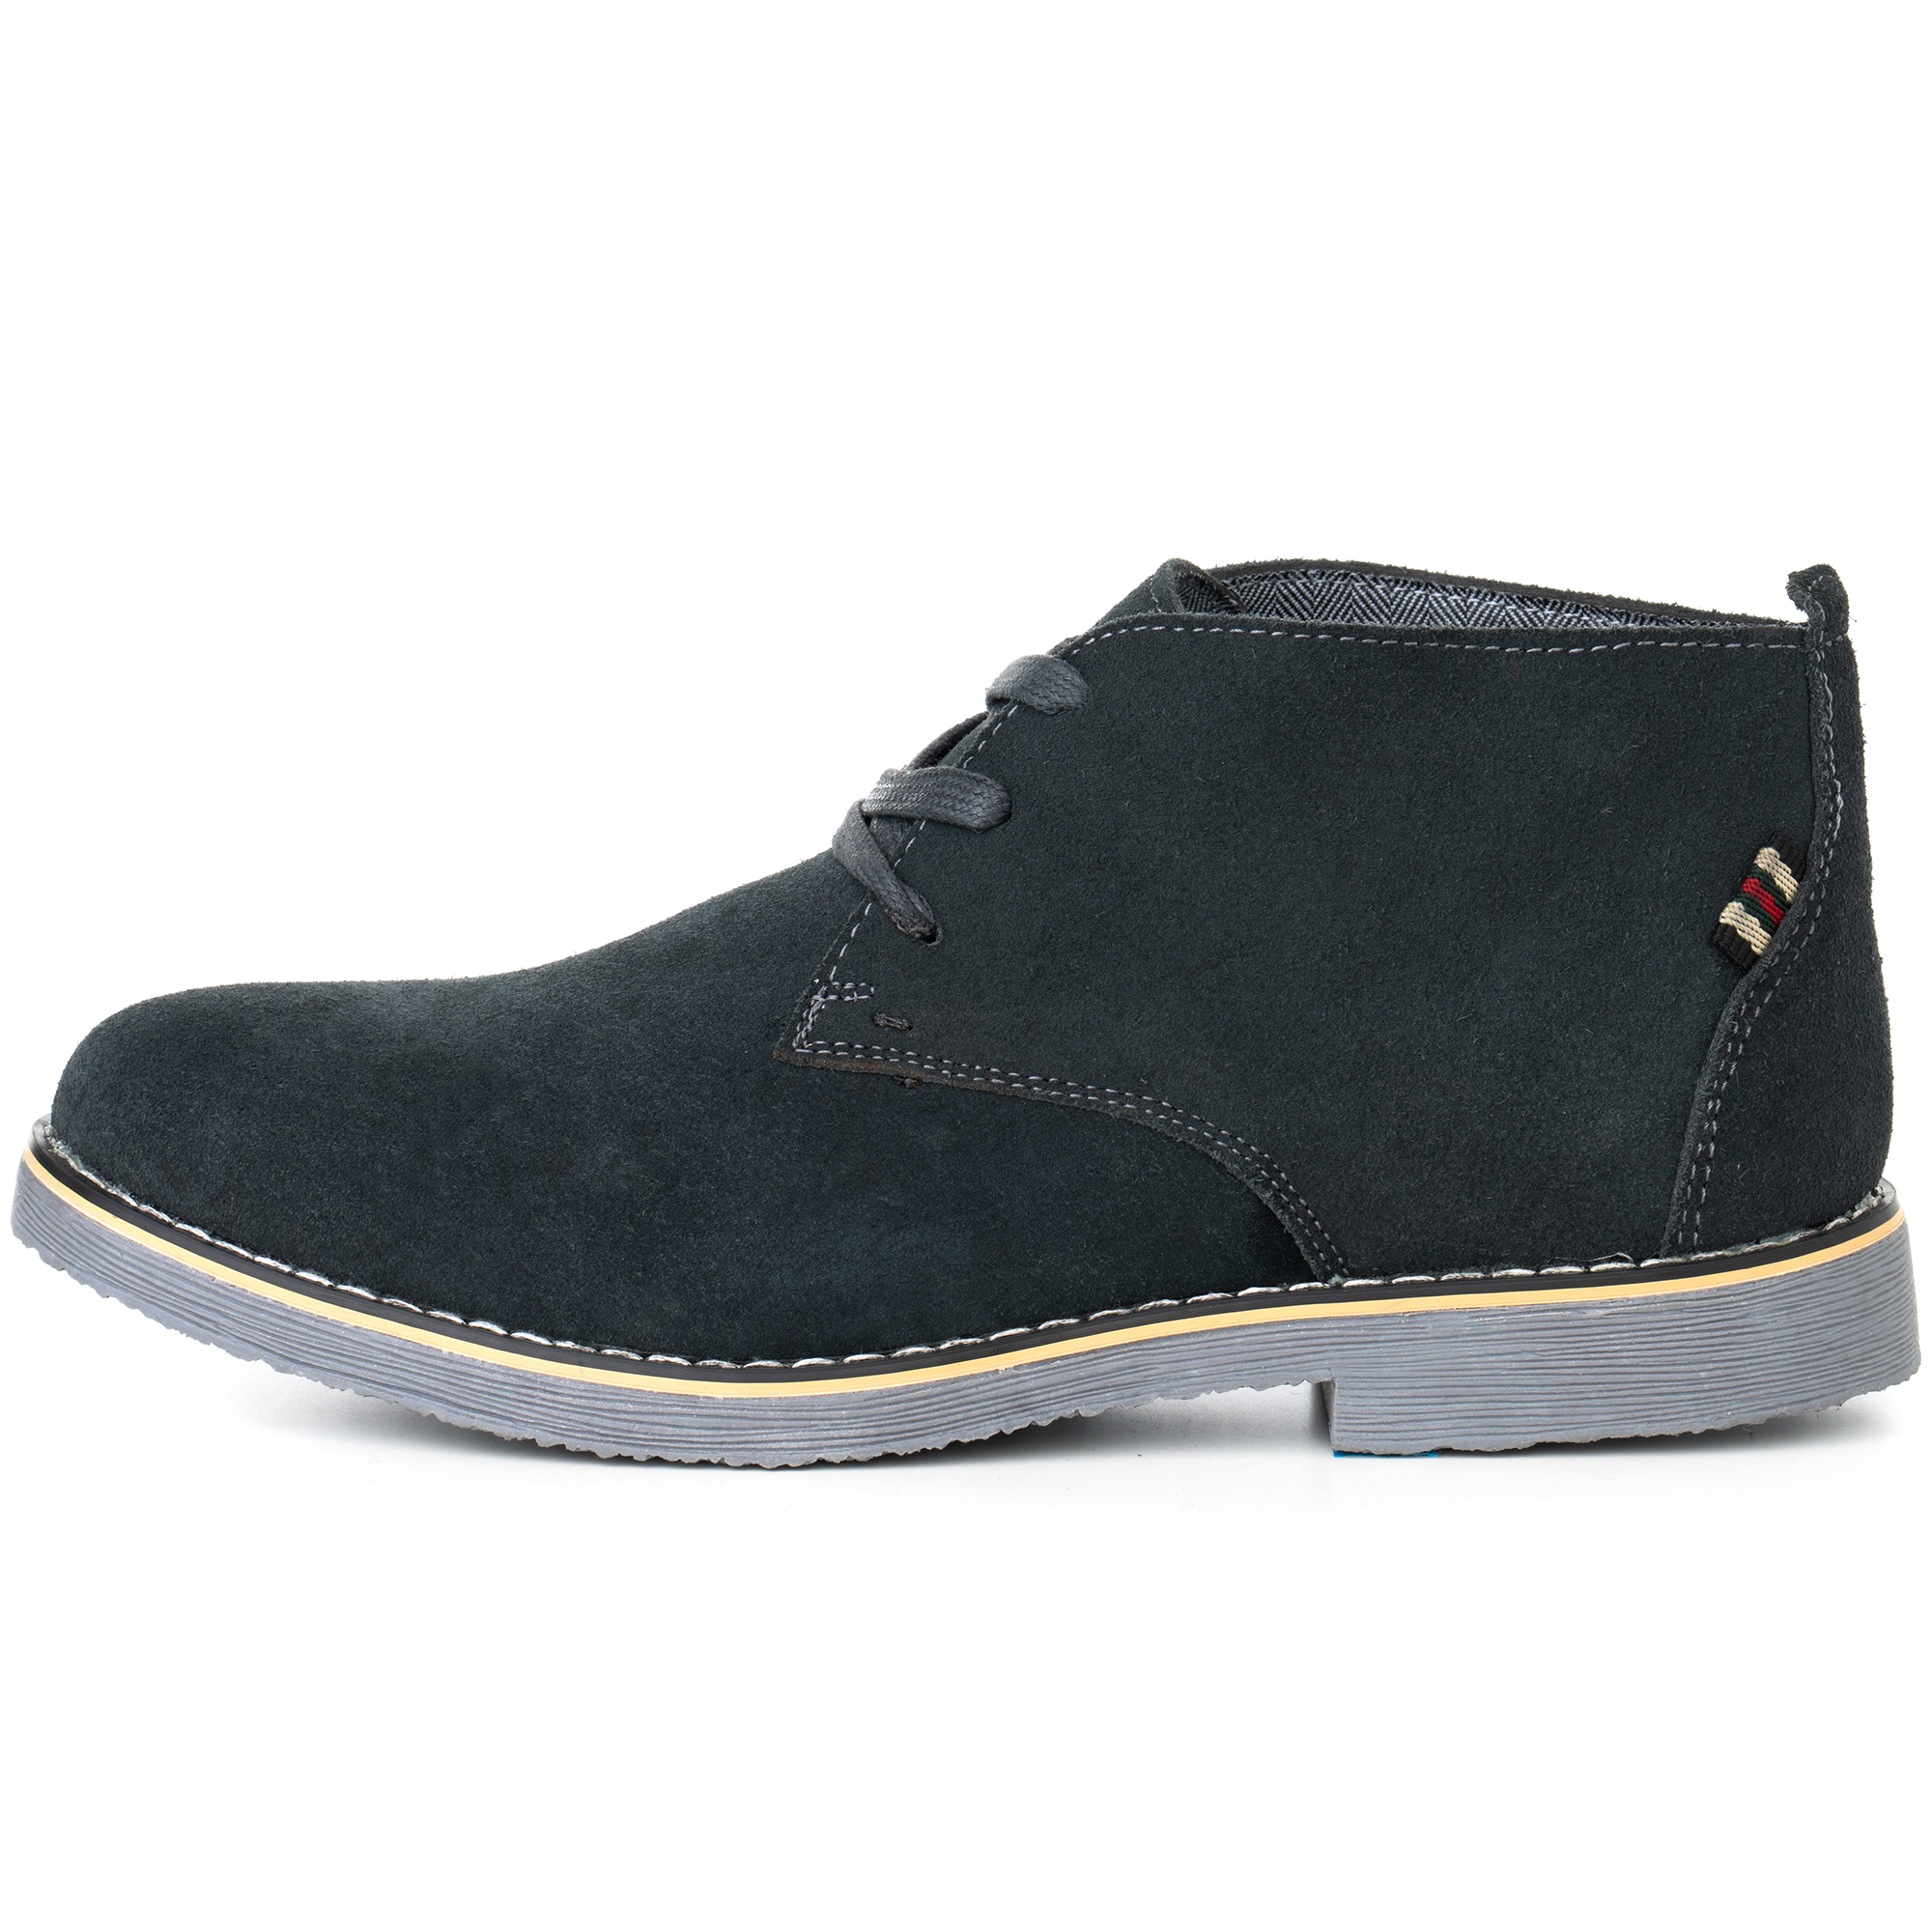 Alpine-Swiss-Beck-Mens-Suede-Chukka-Desert-Boots-Lace-Up-Shoes-Crepe-Sole-Oxford miniature 25